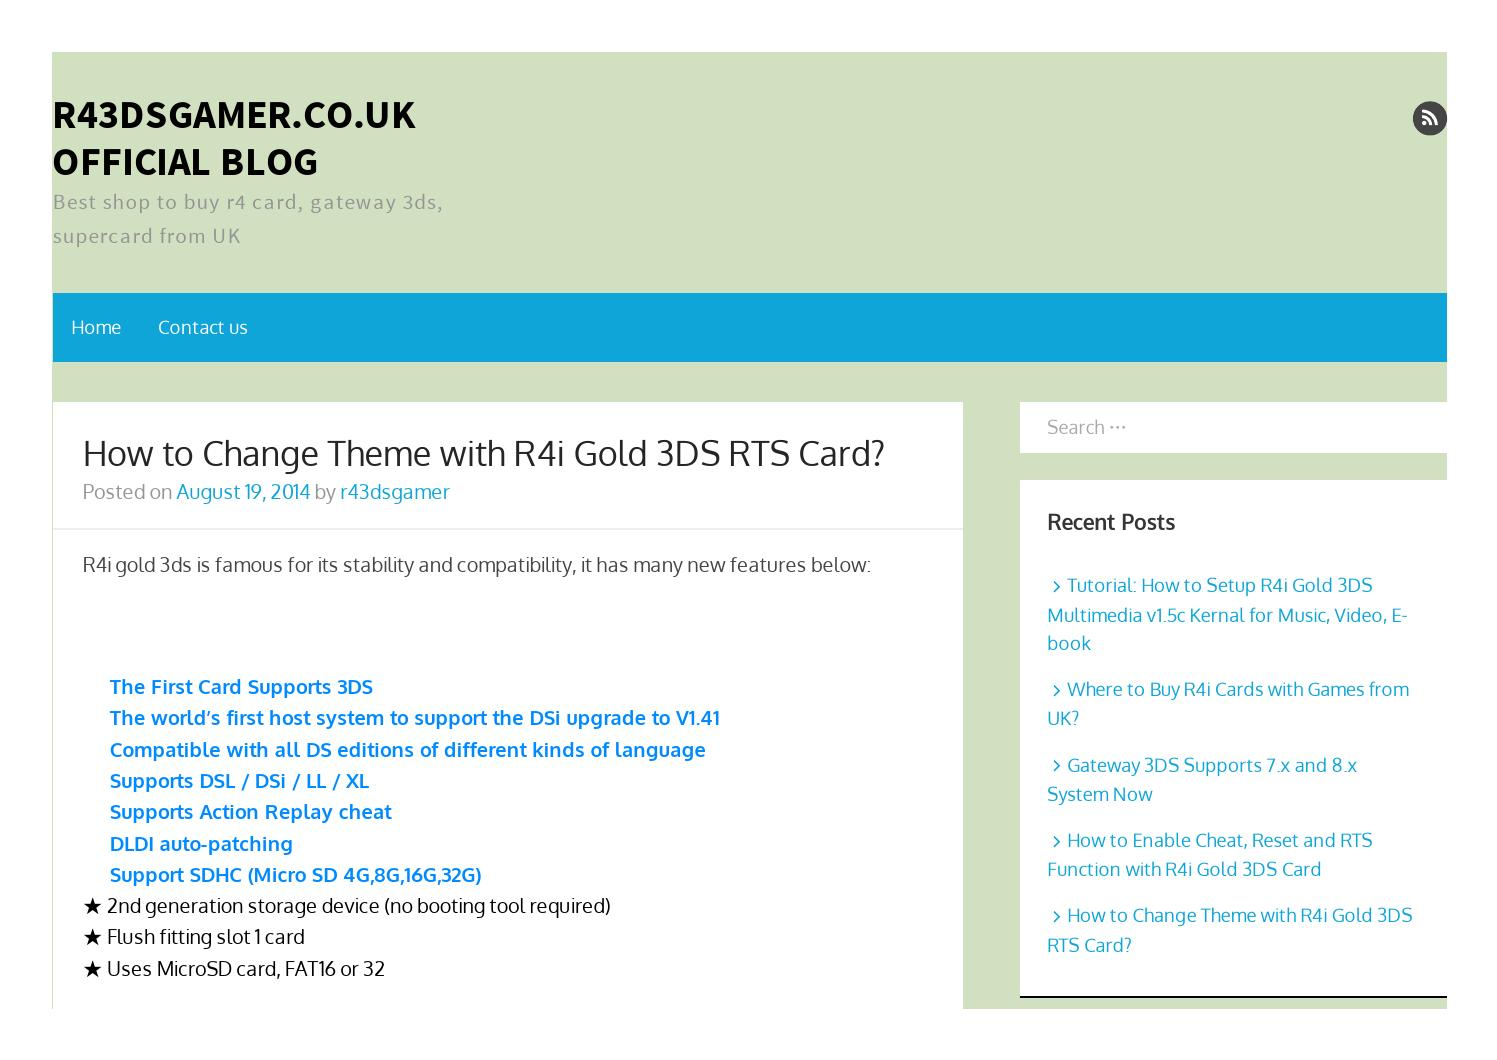 How to change theme with r4i gold 3ds rts card r43dsgamer co uk by